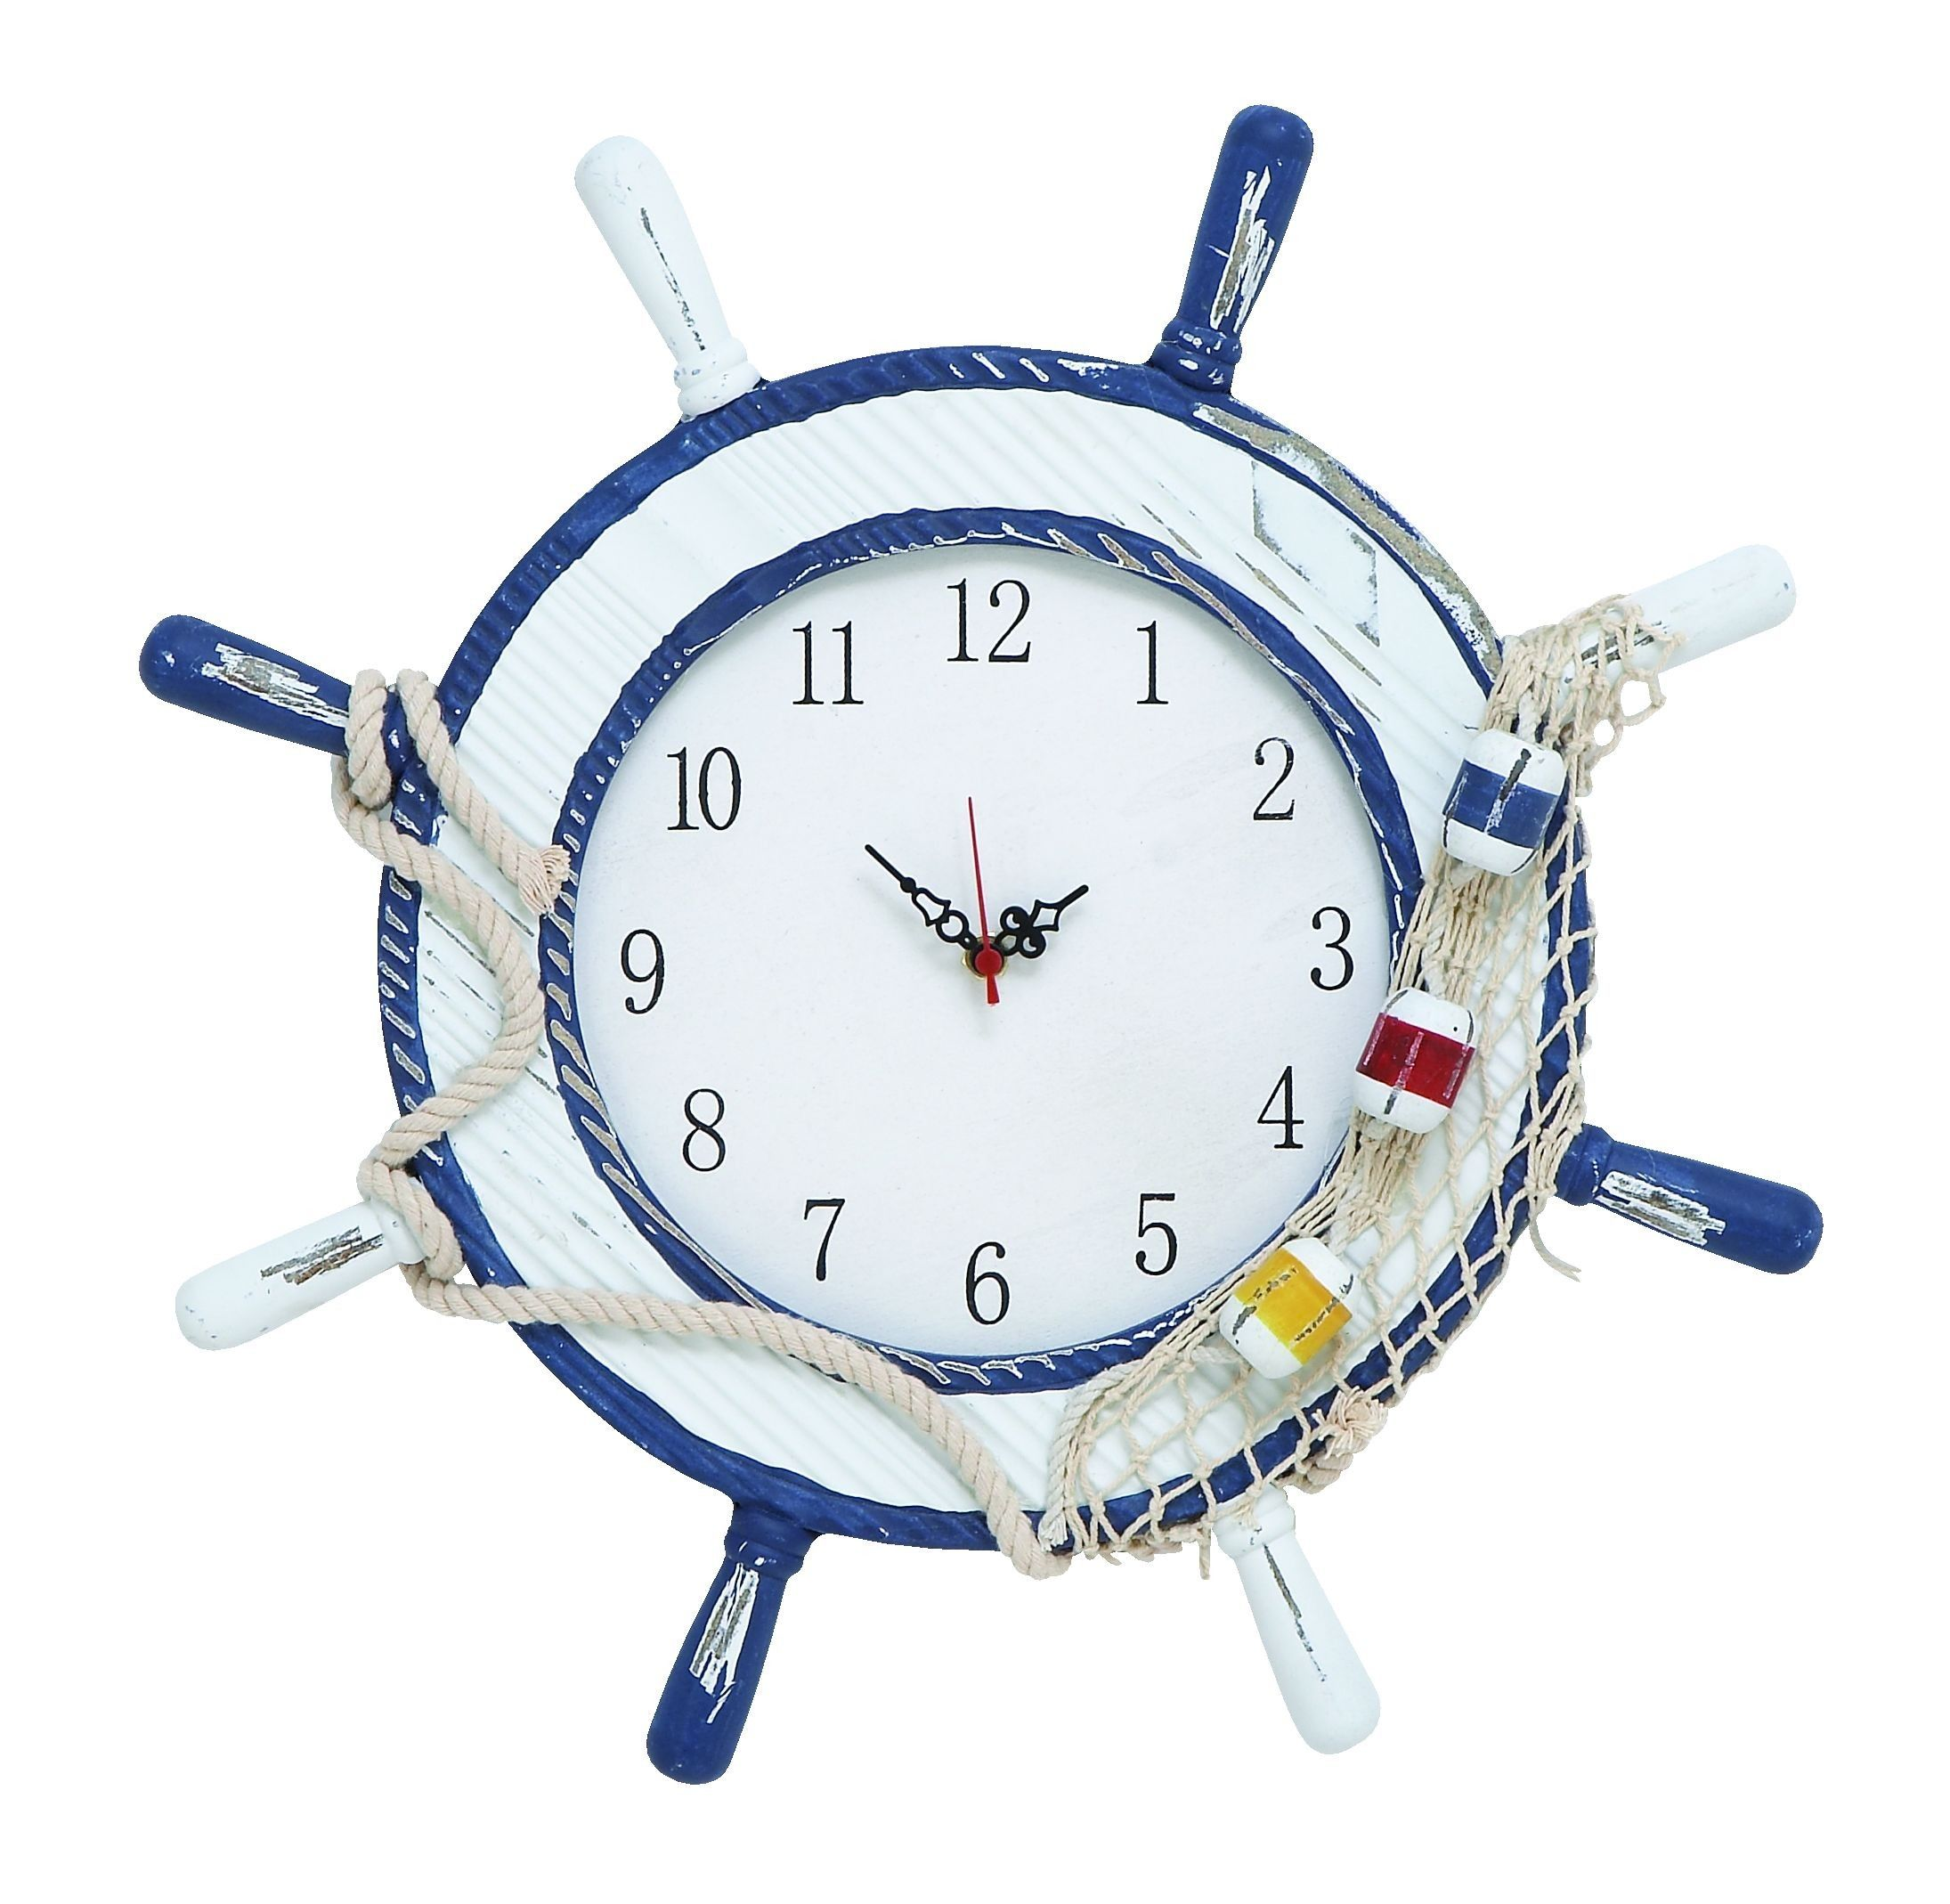 Nautical maritime style anchor ship wheel white blue wall clock nautical maritime style anchor ship wheel white blue wall clock decor lamp lighting amipublicfo Images